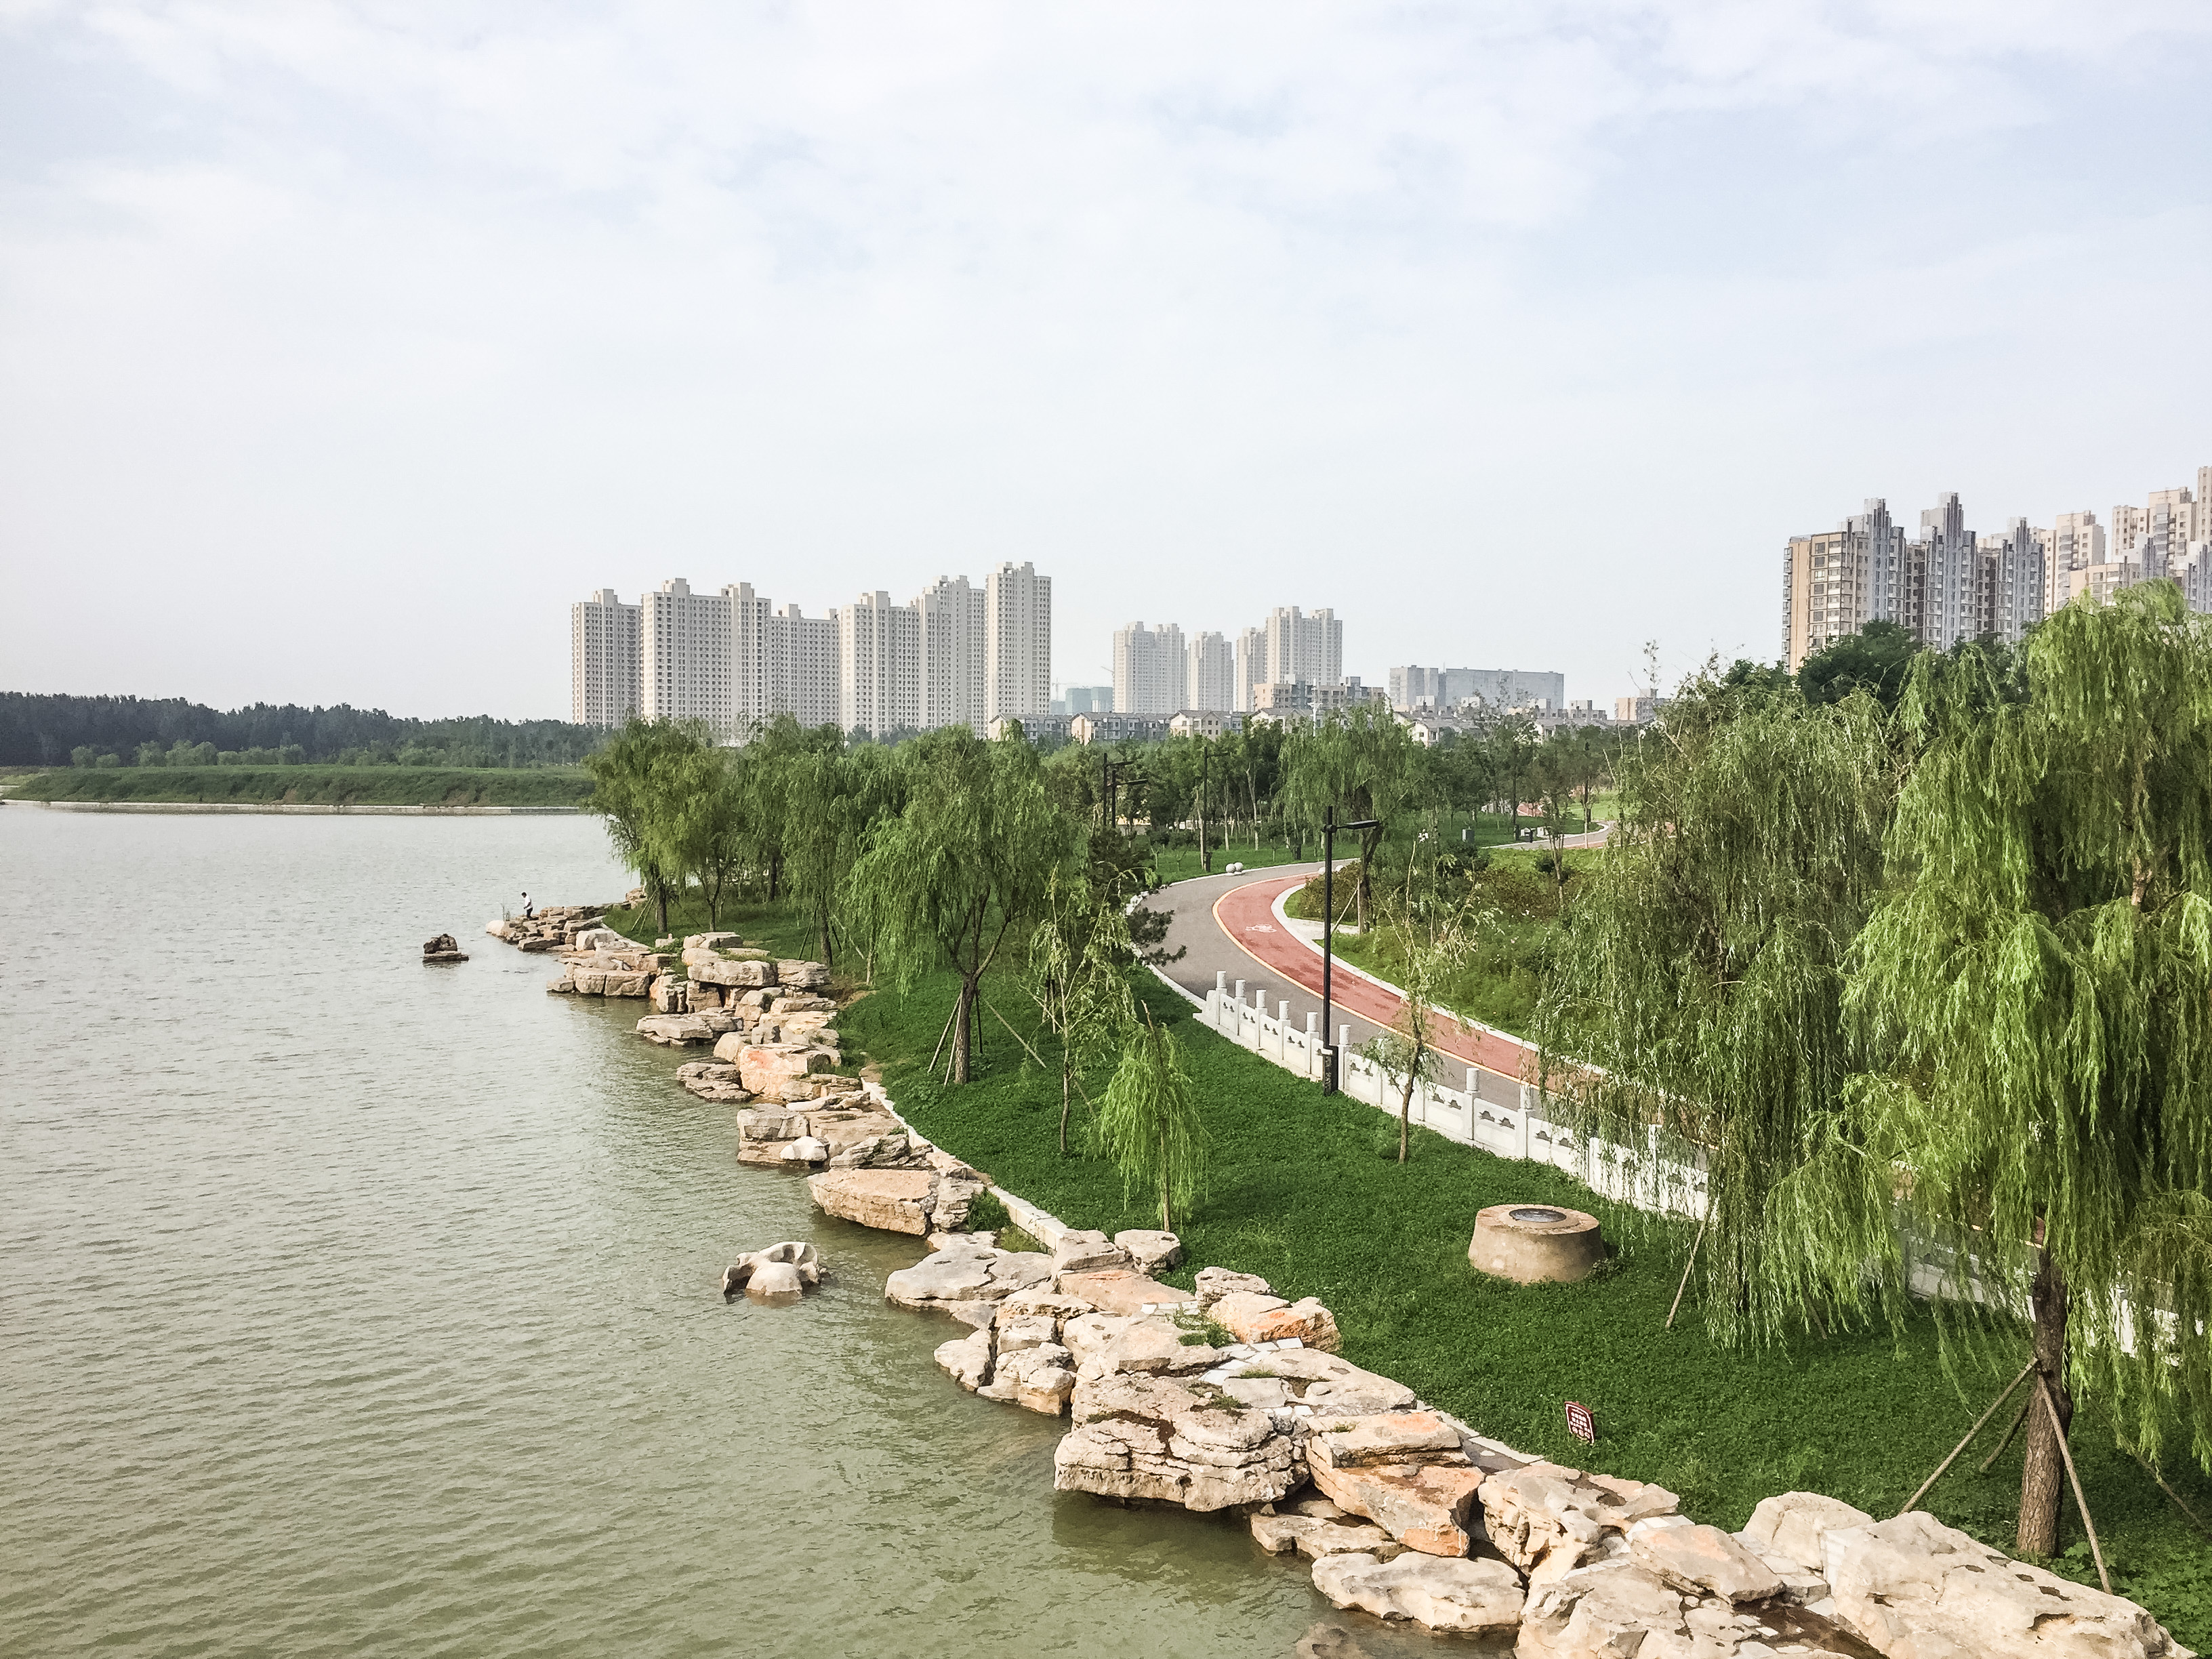 About Kaifeng on wuxi china map world, wuhan china map world, xinxiang china map world, suzhou china map world, chengdu china map world, kunming china map world, hangzhou china map world, hefei china map world,